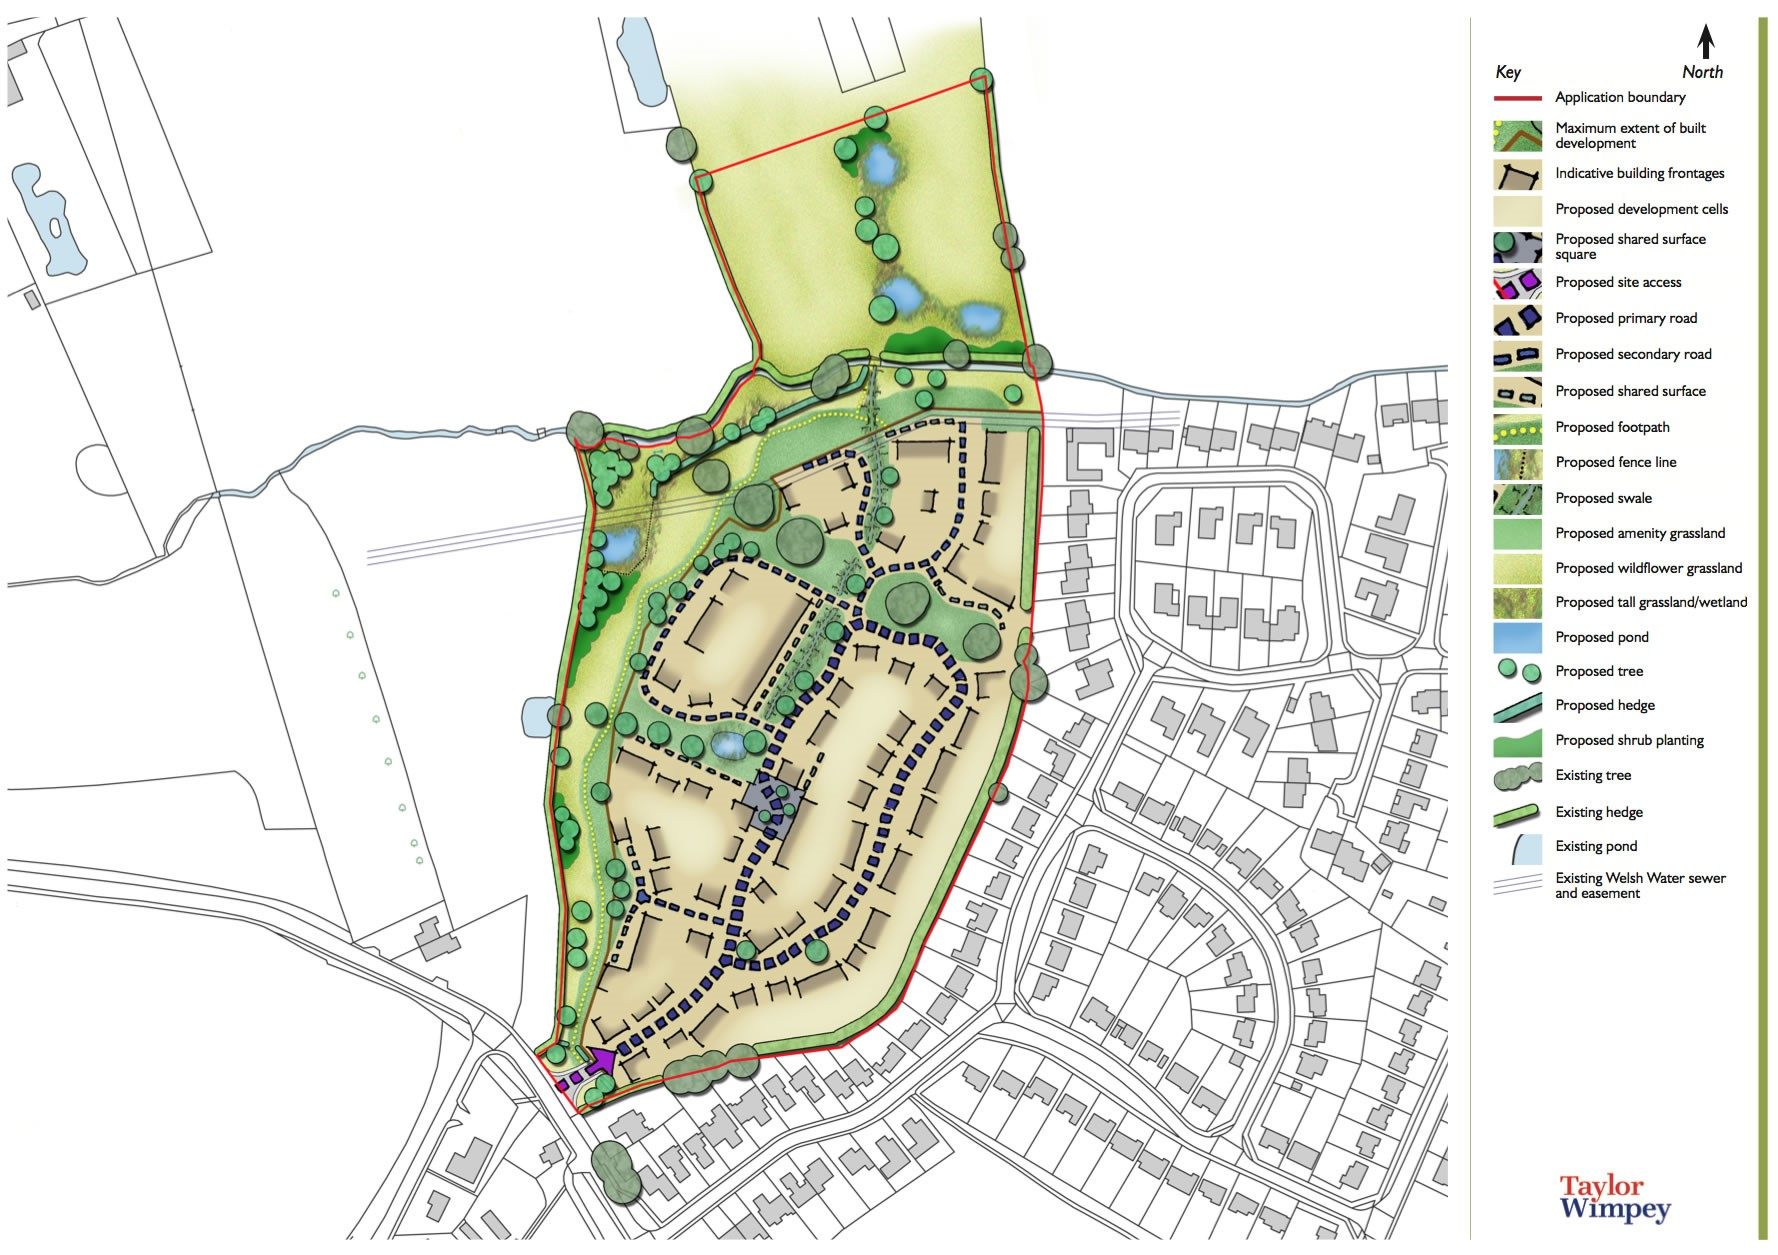 Tattenhall masterplan